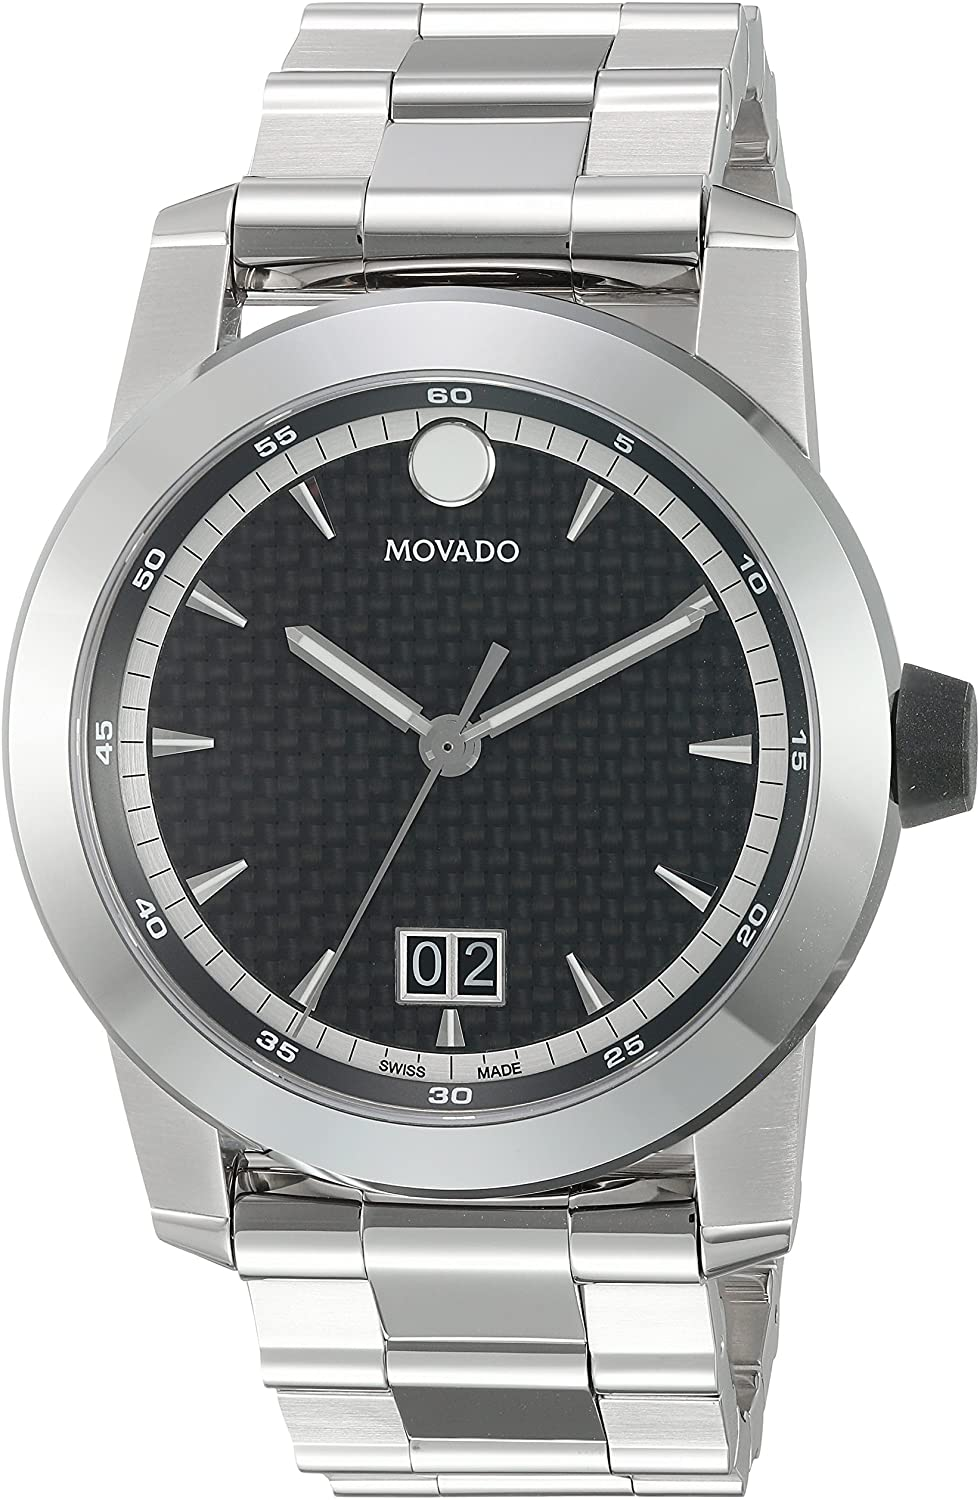 Movado Men's Swiss-Quartz Watch with Stainless-Steel Strap, Silver, 25 (Model: 0607050)